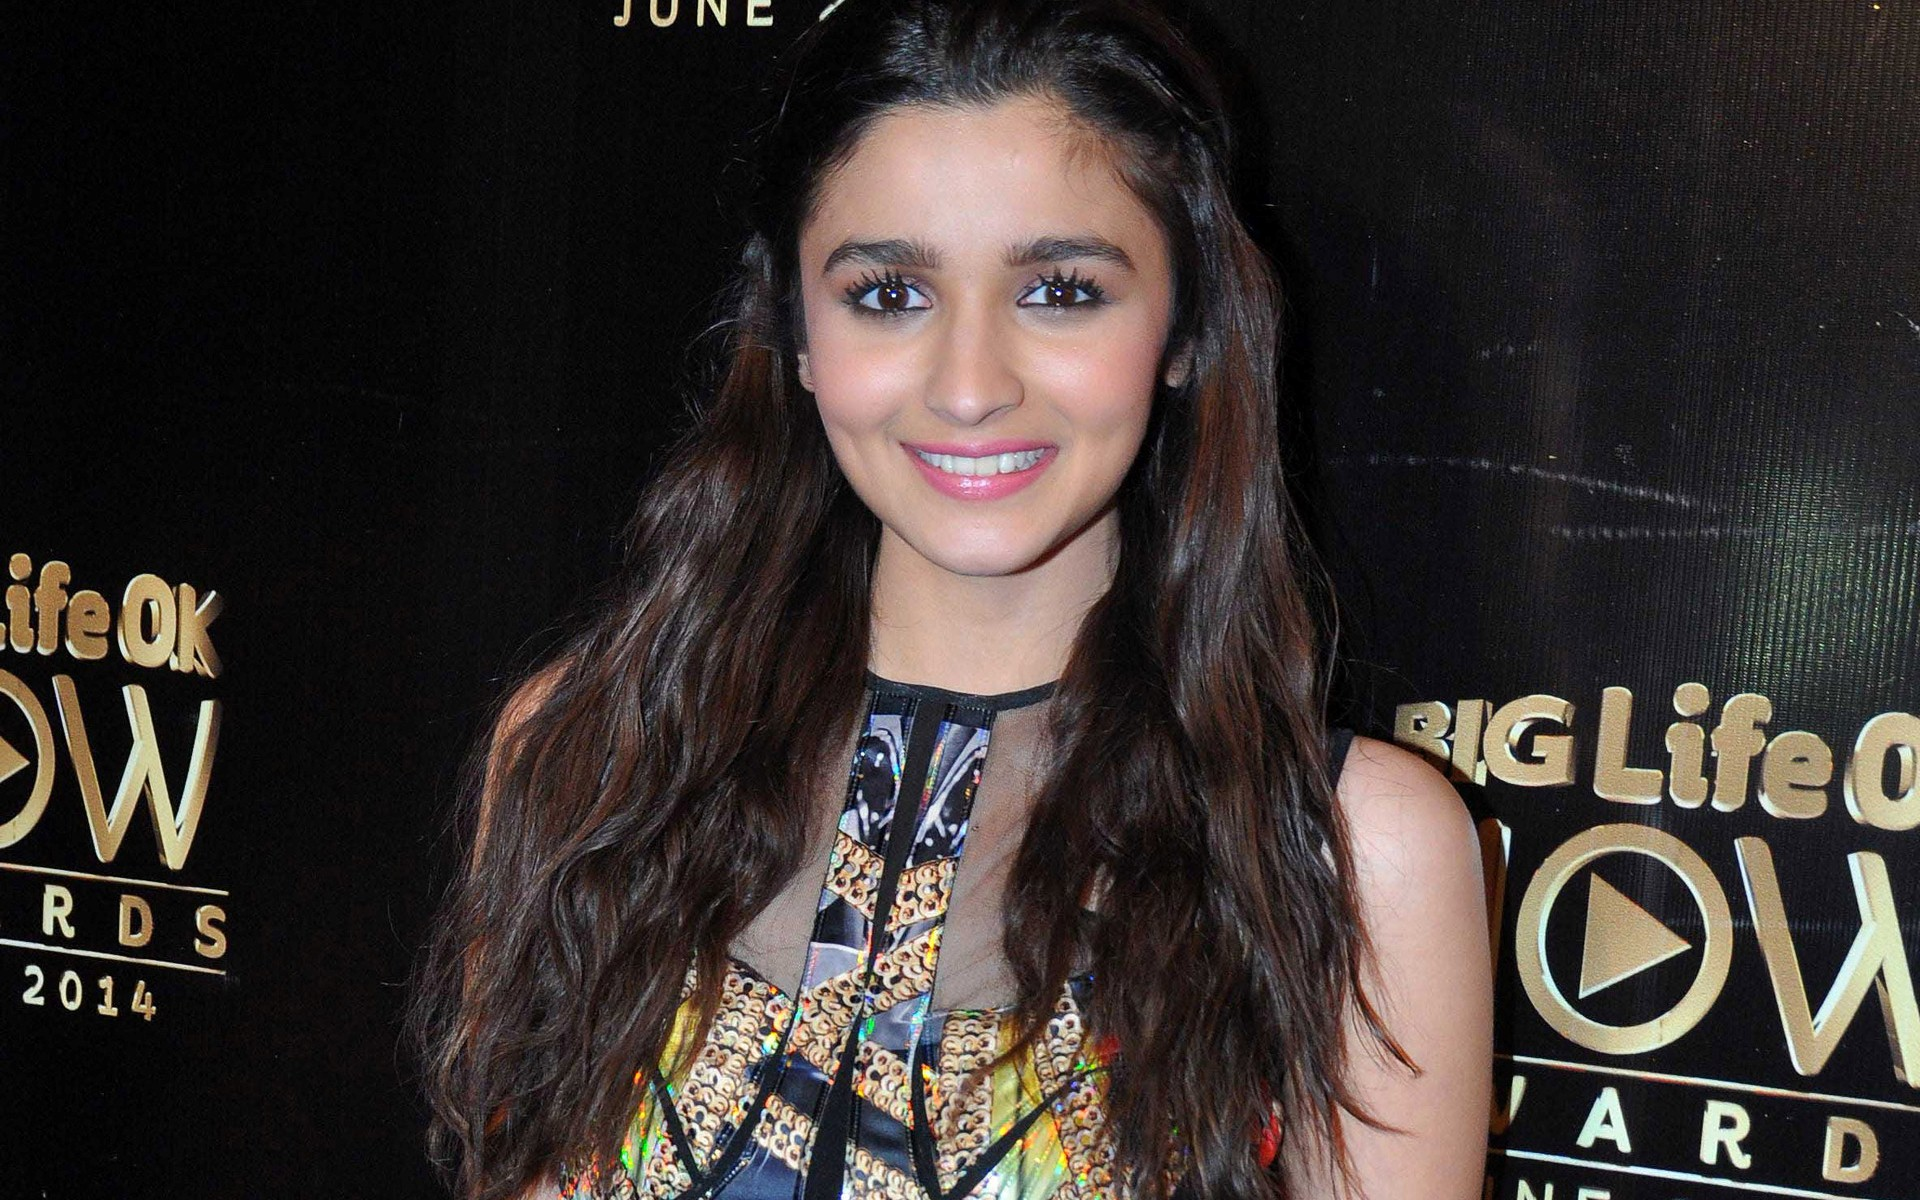 Download Best Alia Bhatt In Pink Lipstick With Cute Smile Of Bollywood Actress Hd Photos Wallpapers Images Free Latestwall